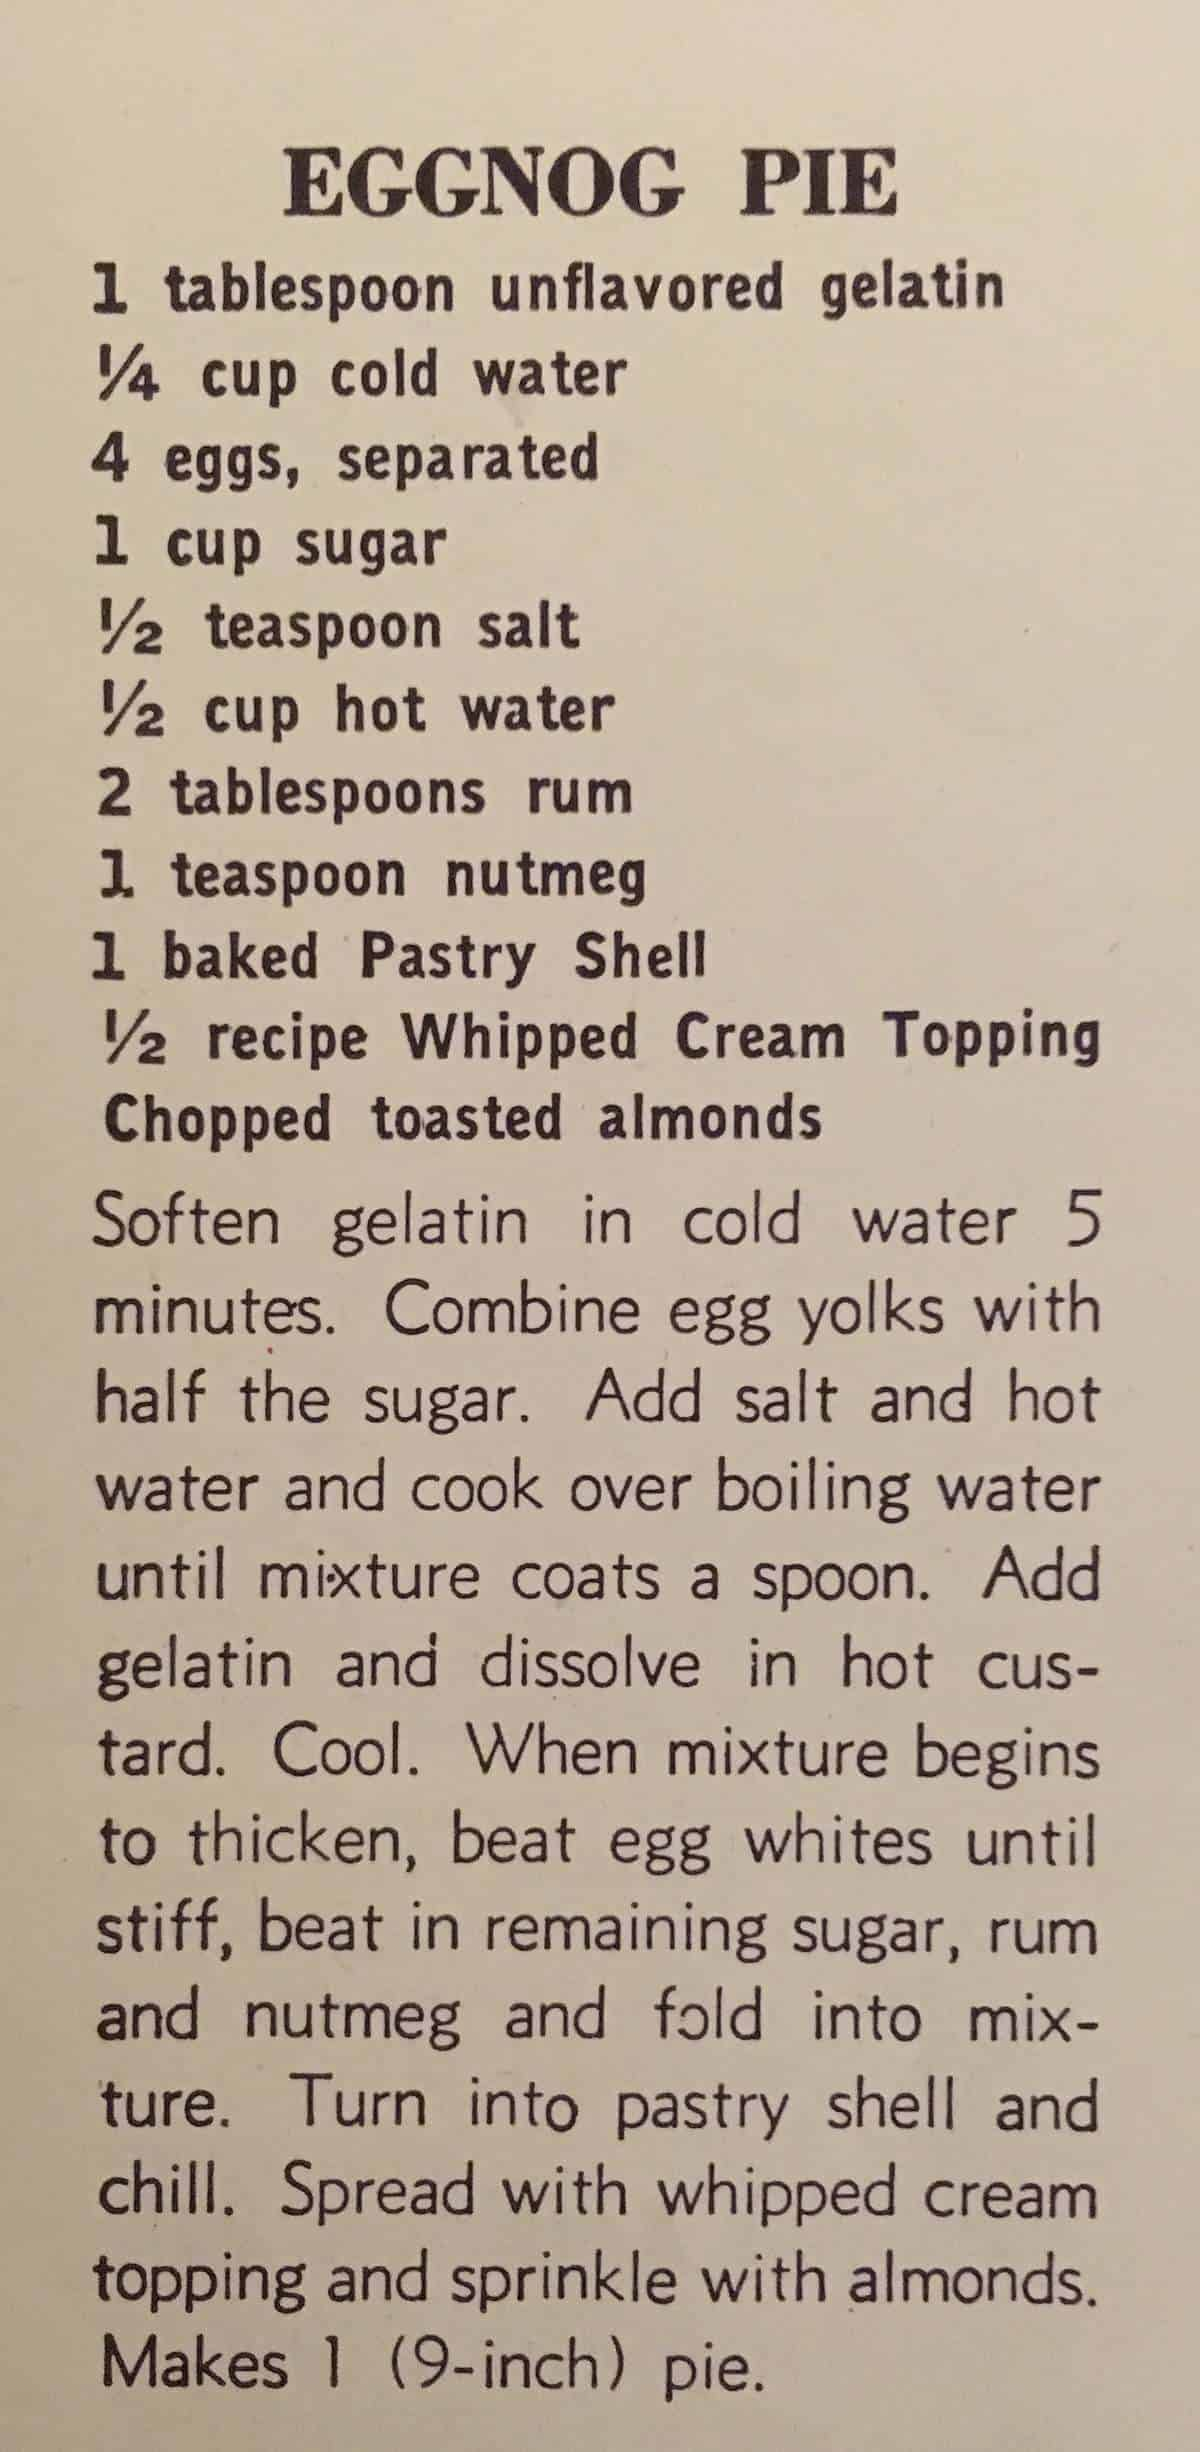 1940 Recipe for Eggnog Pie - This vintage recipe comes from the cookbook 250 Superb Pies and Pastries. To see my recreation visit cupofzest.com